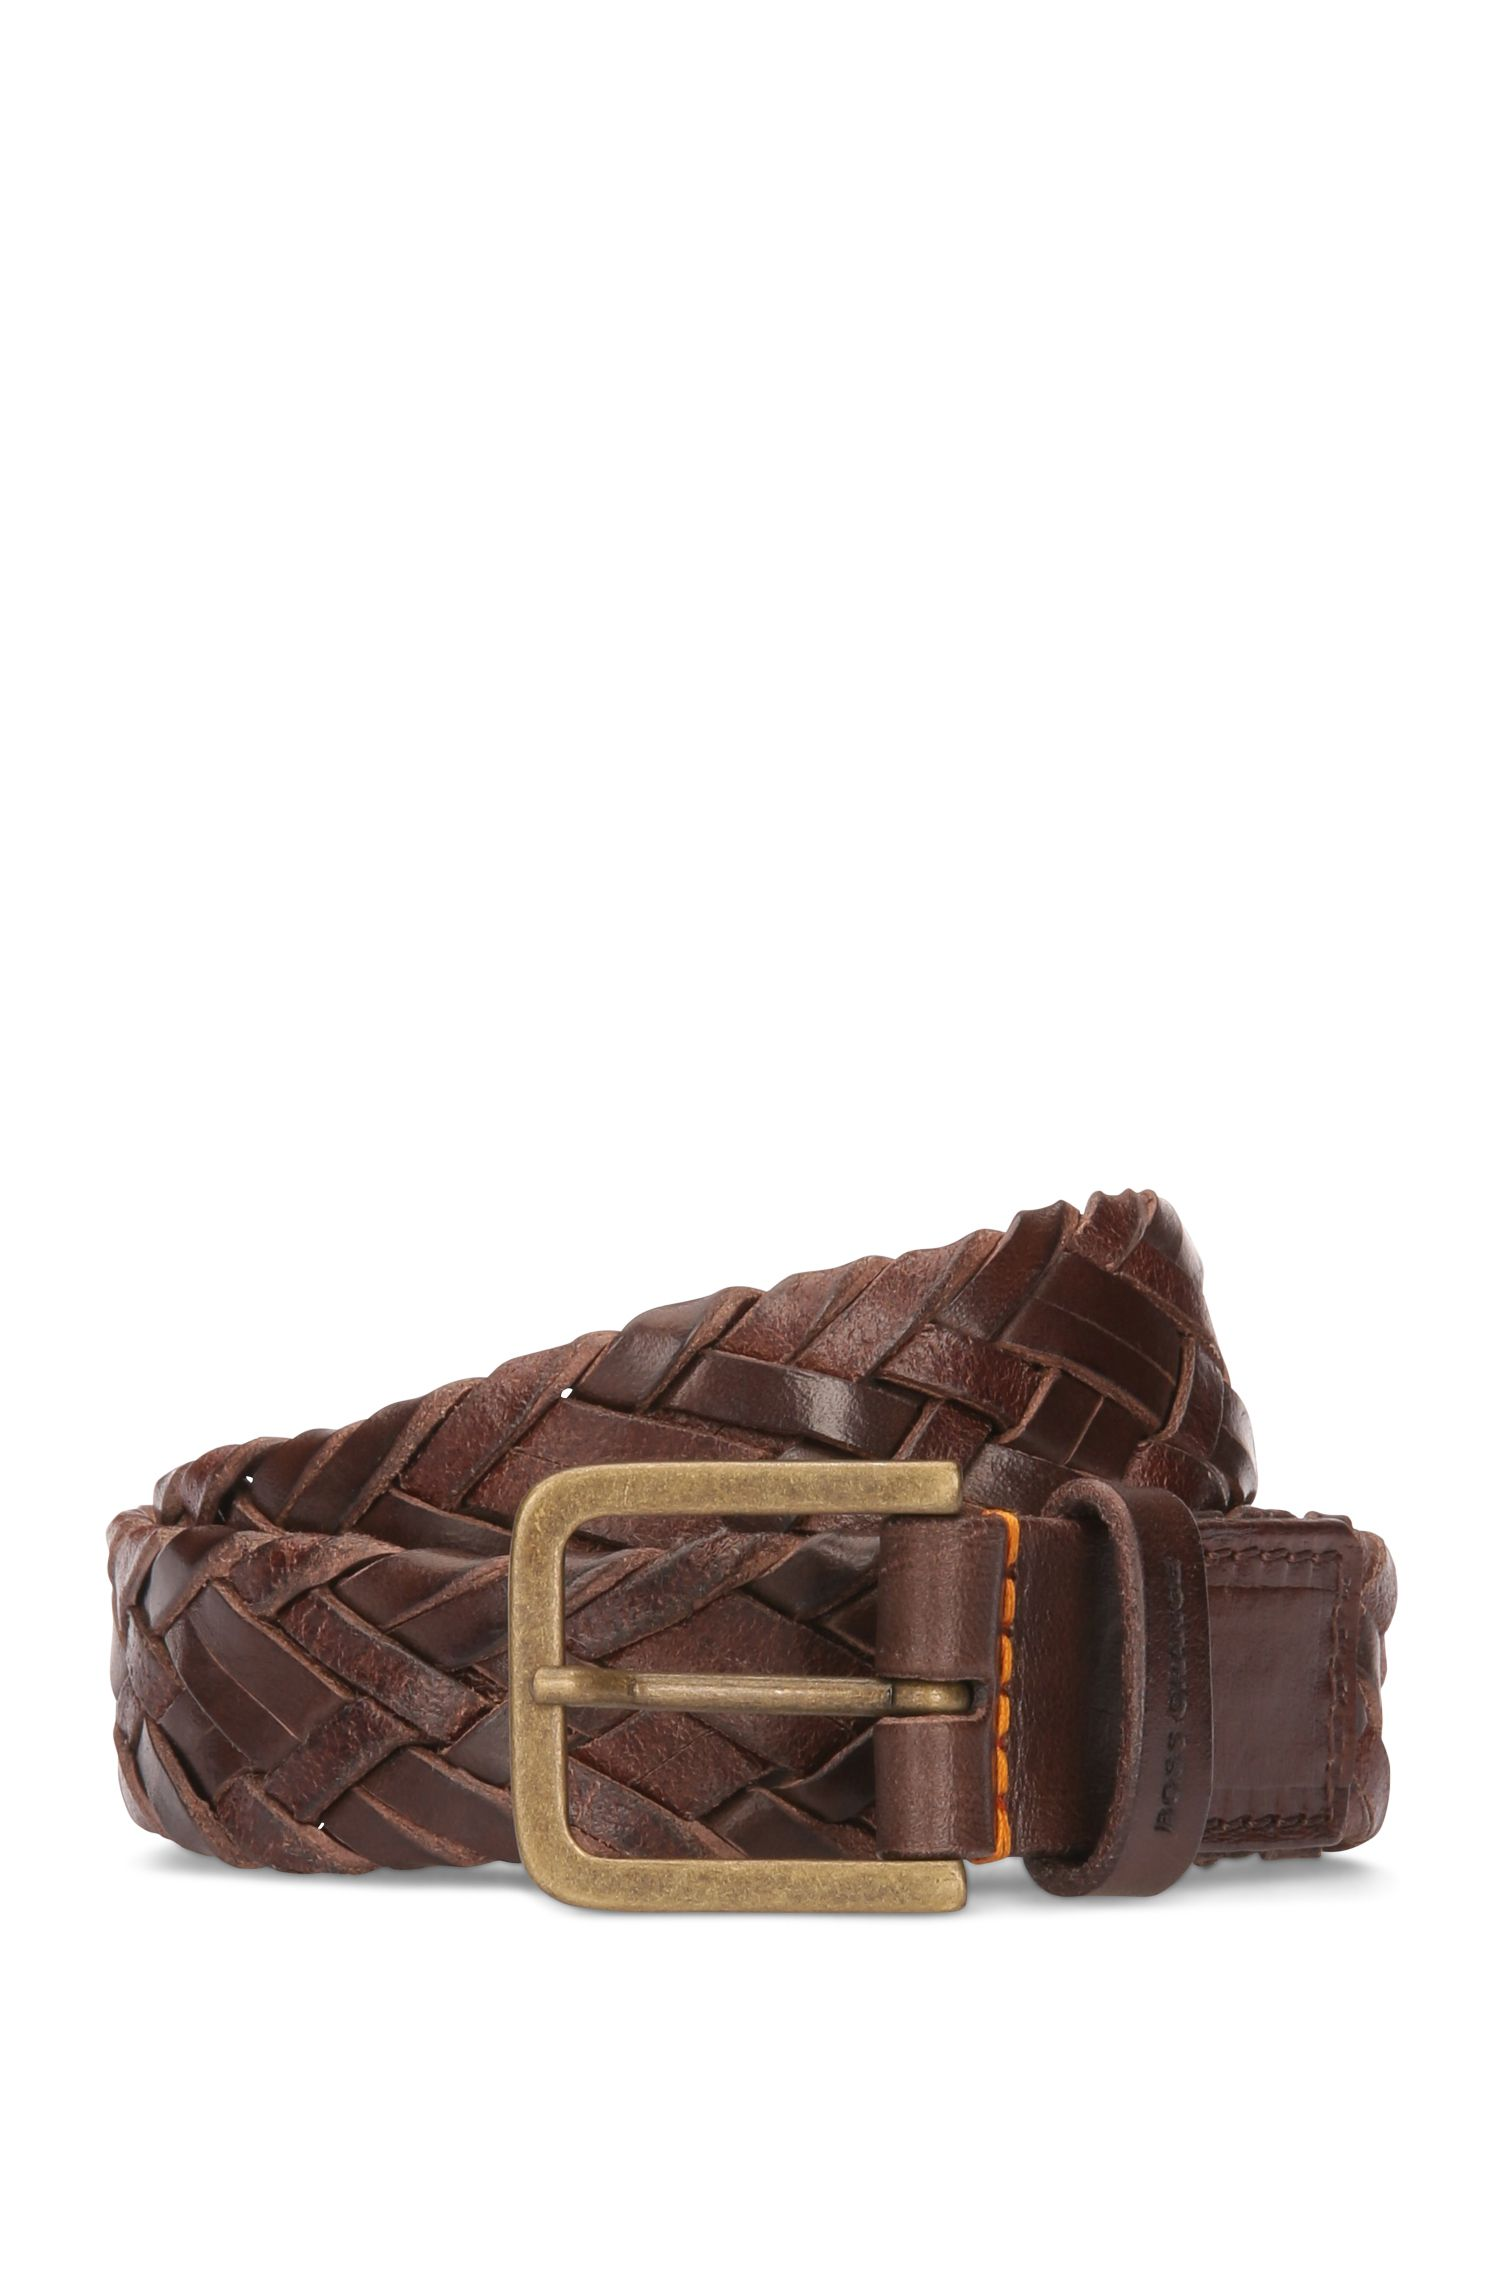 Woven belt in soft leather